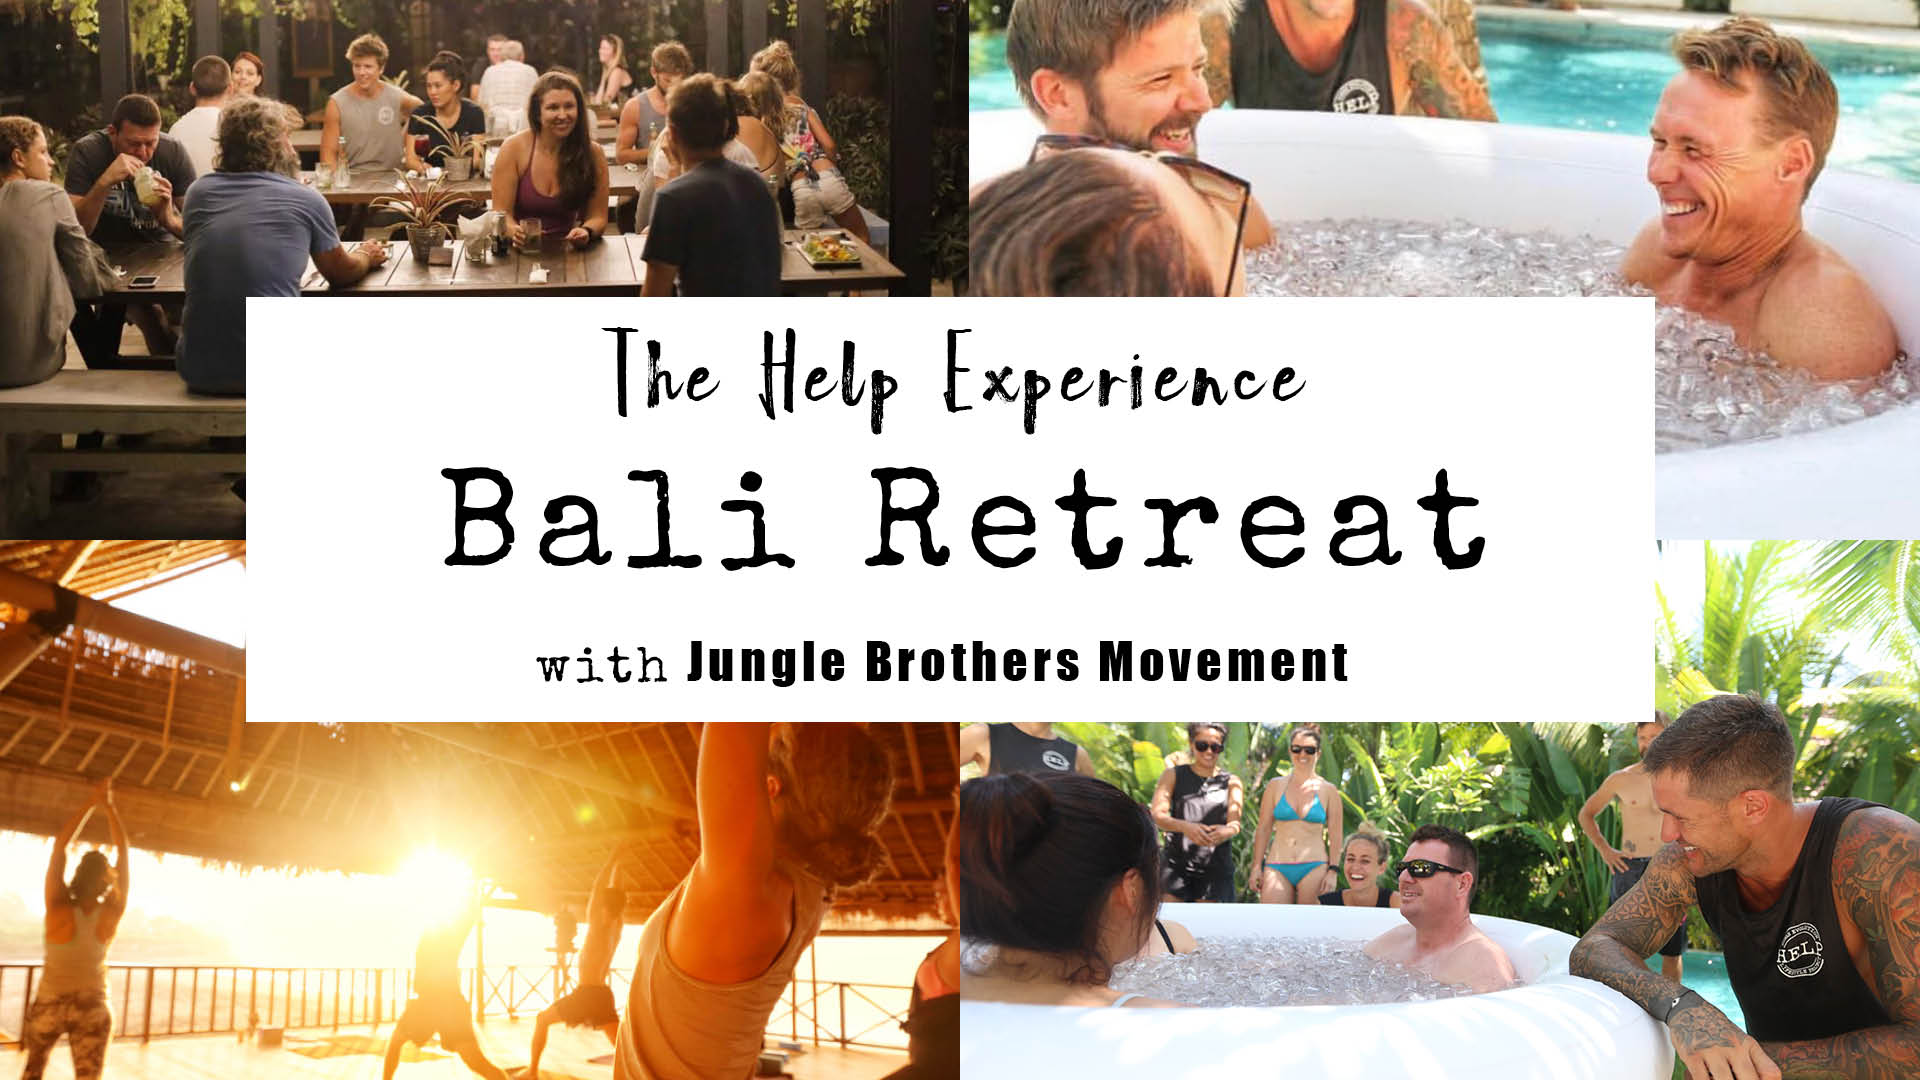 Bali Retreat - The Help Experience + Jungle Brothers Movement